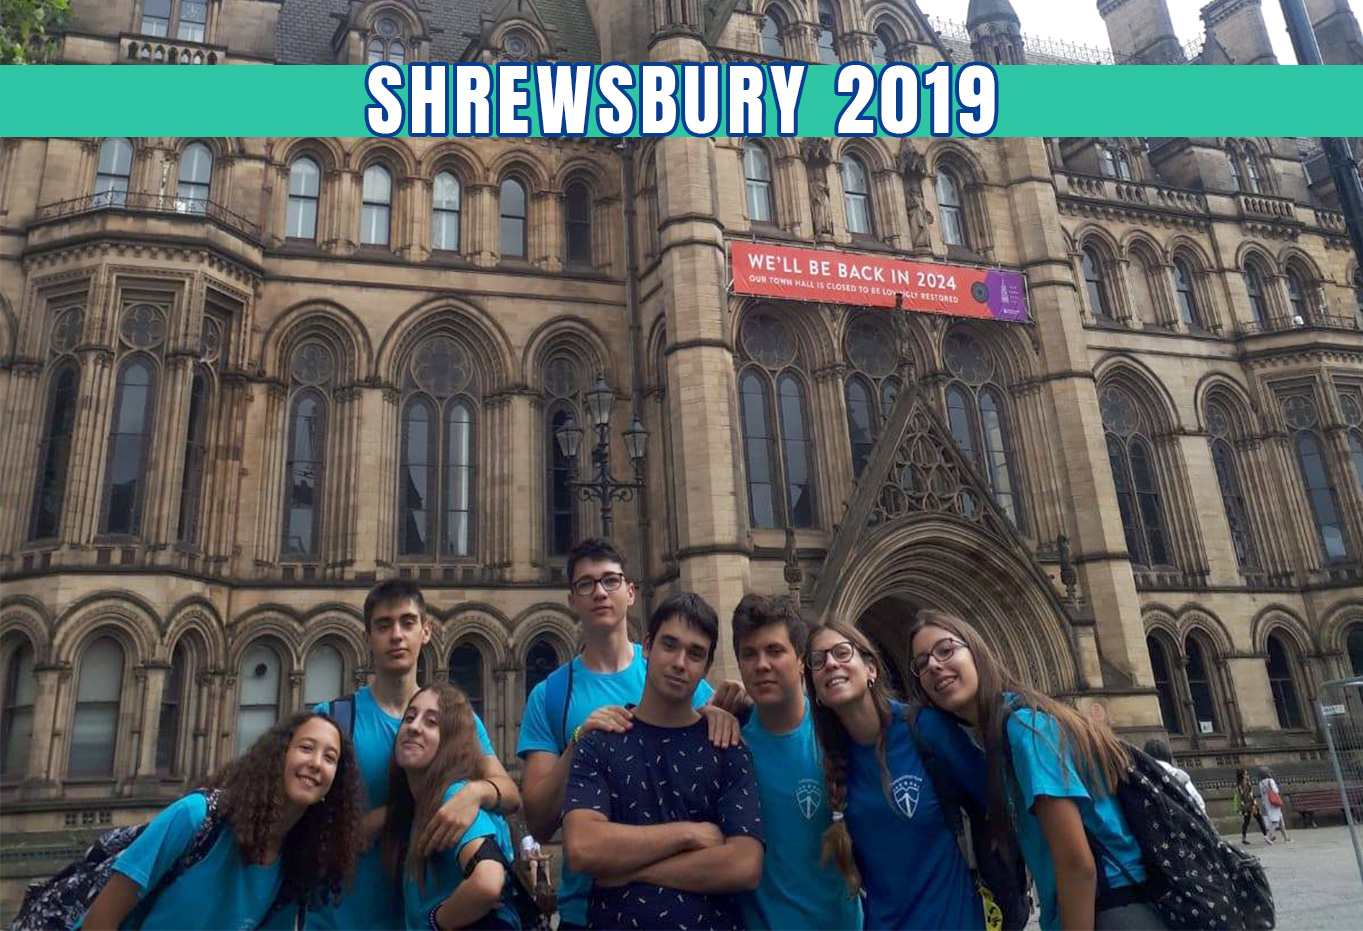 Program Review: SHREWSBURY 2019